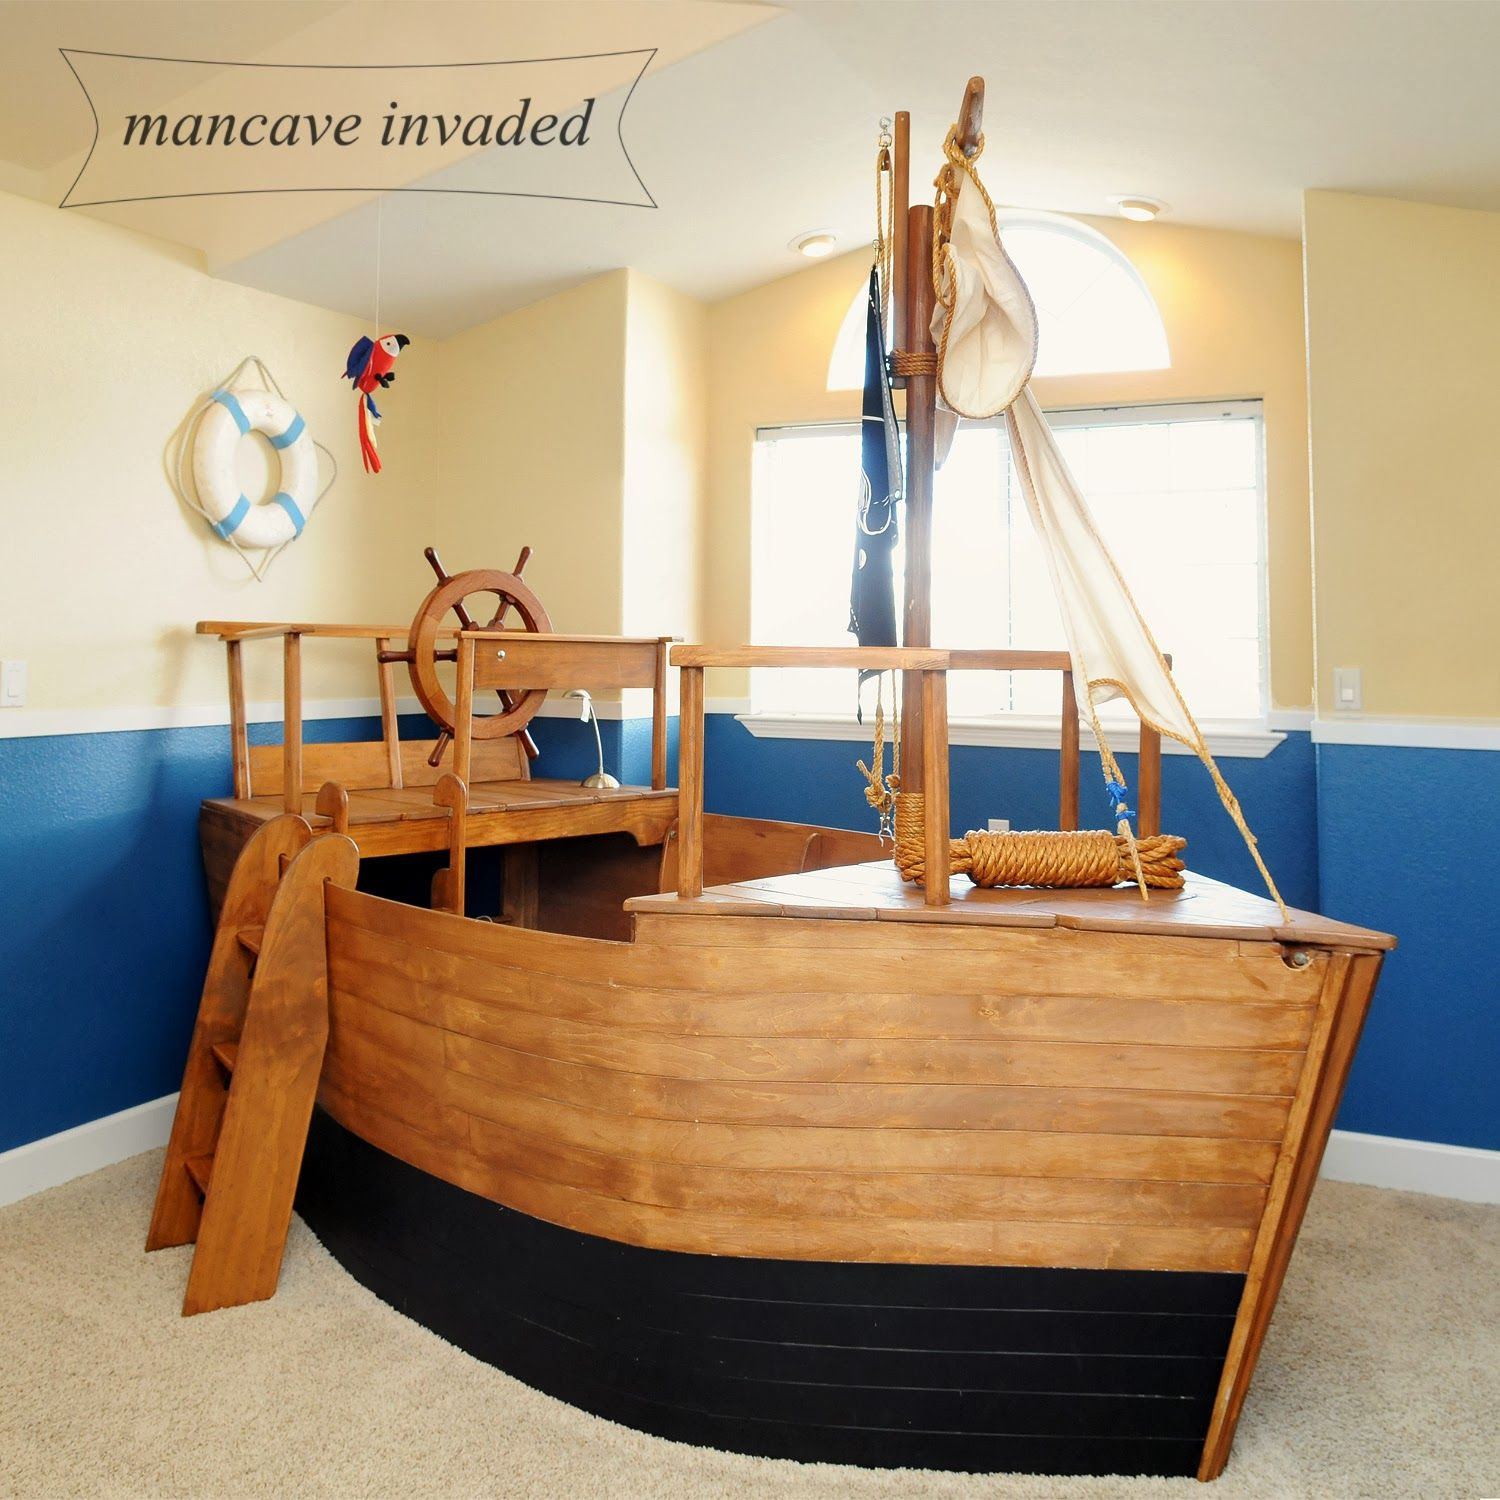 Boat Bed Years Later Boat Bed Diy Toddler Bed Toddler Boat Bed